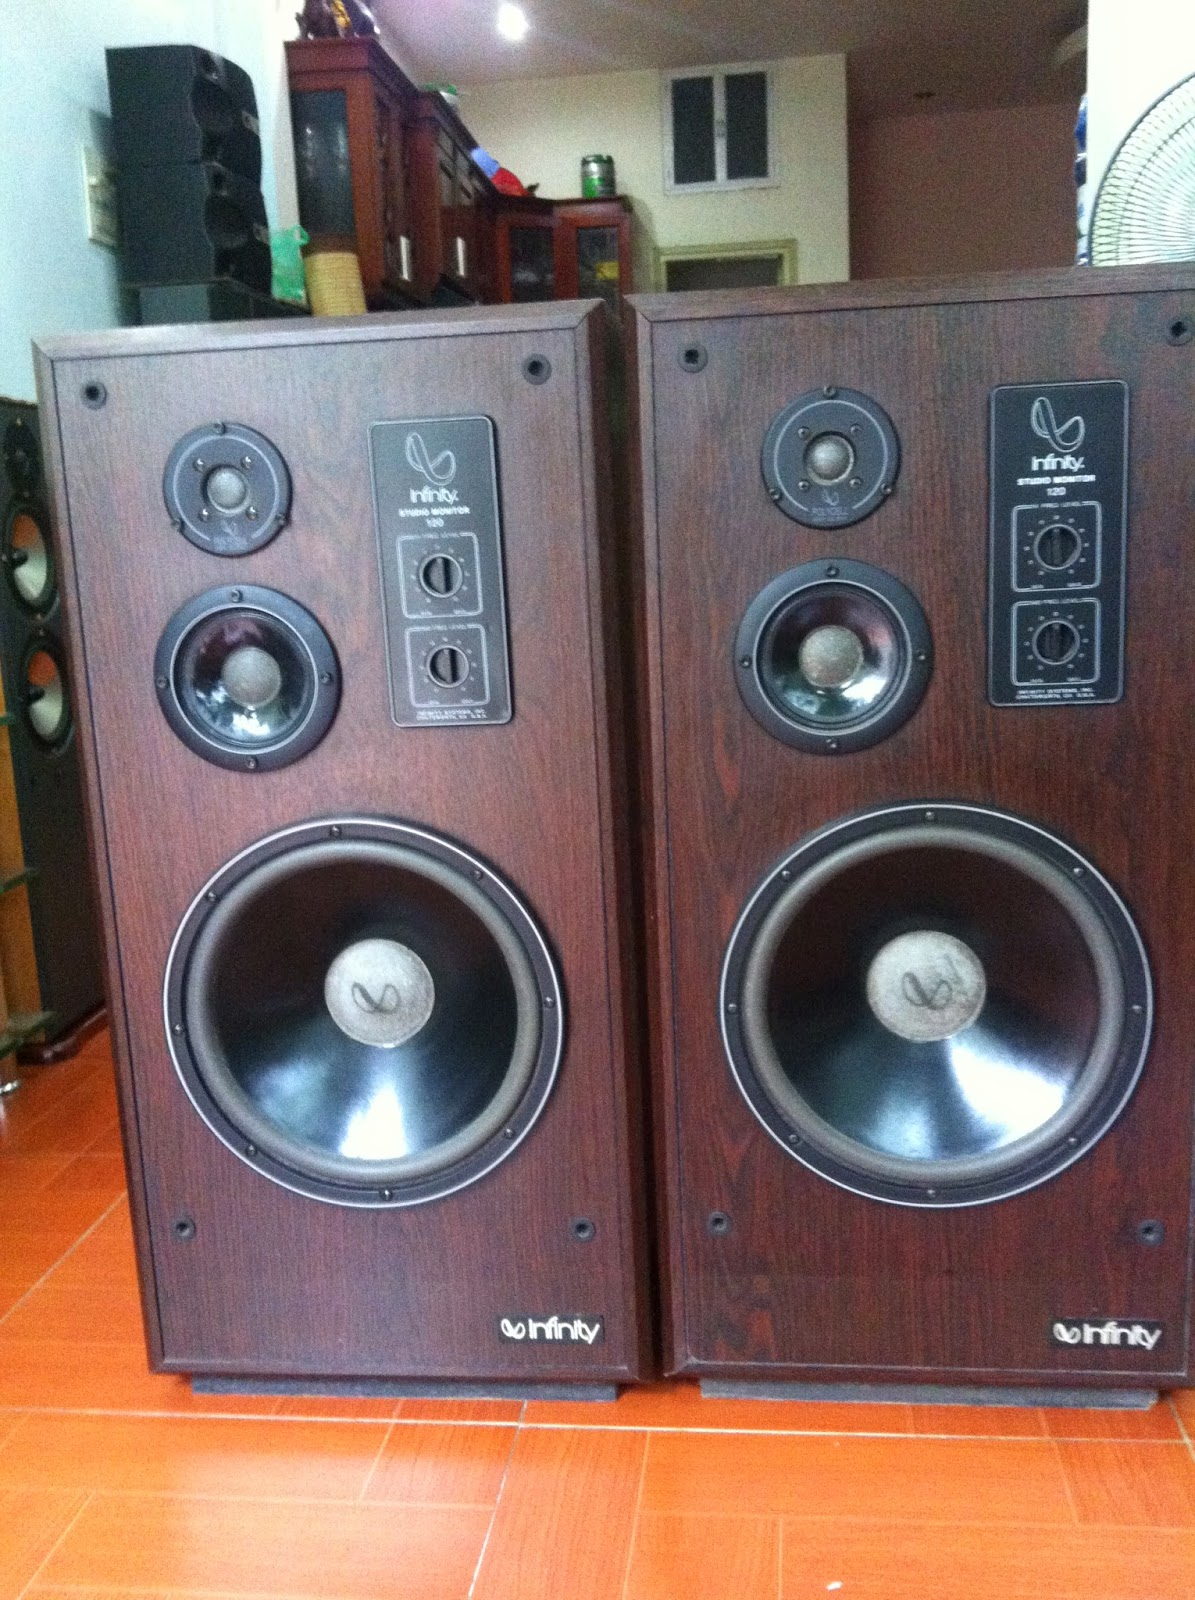 Loa Infinity - Mỹ, model: Infinity Monitor 120 - Made in USA